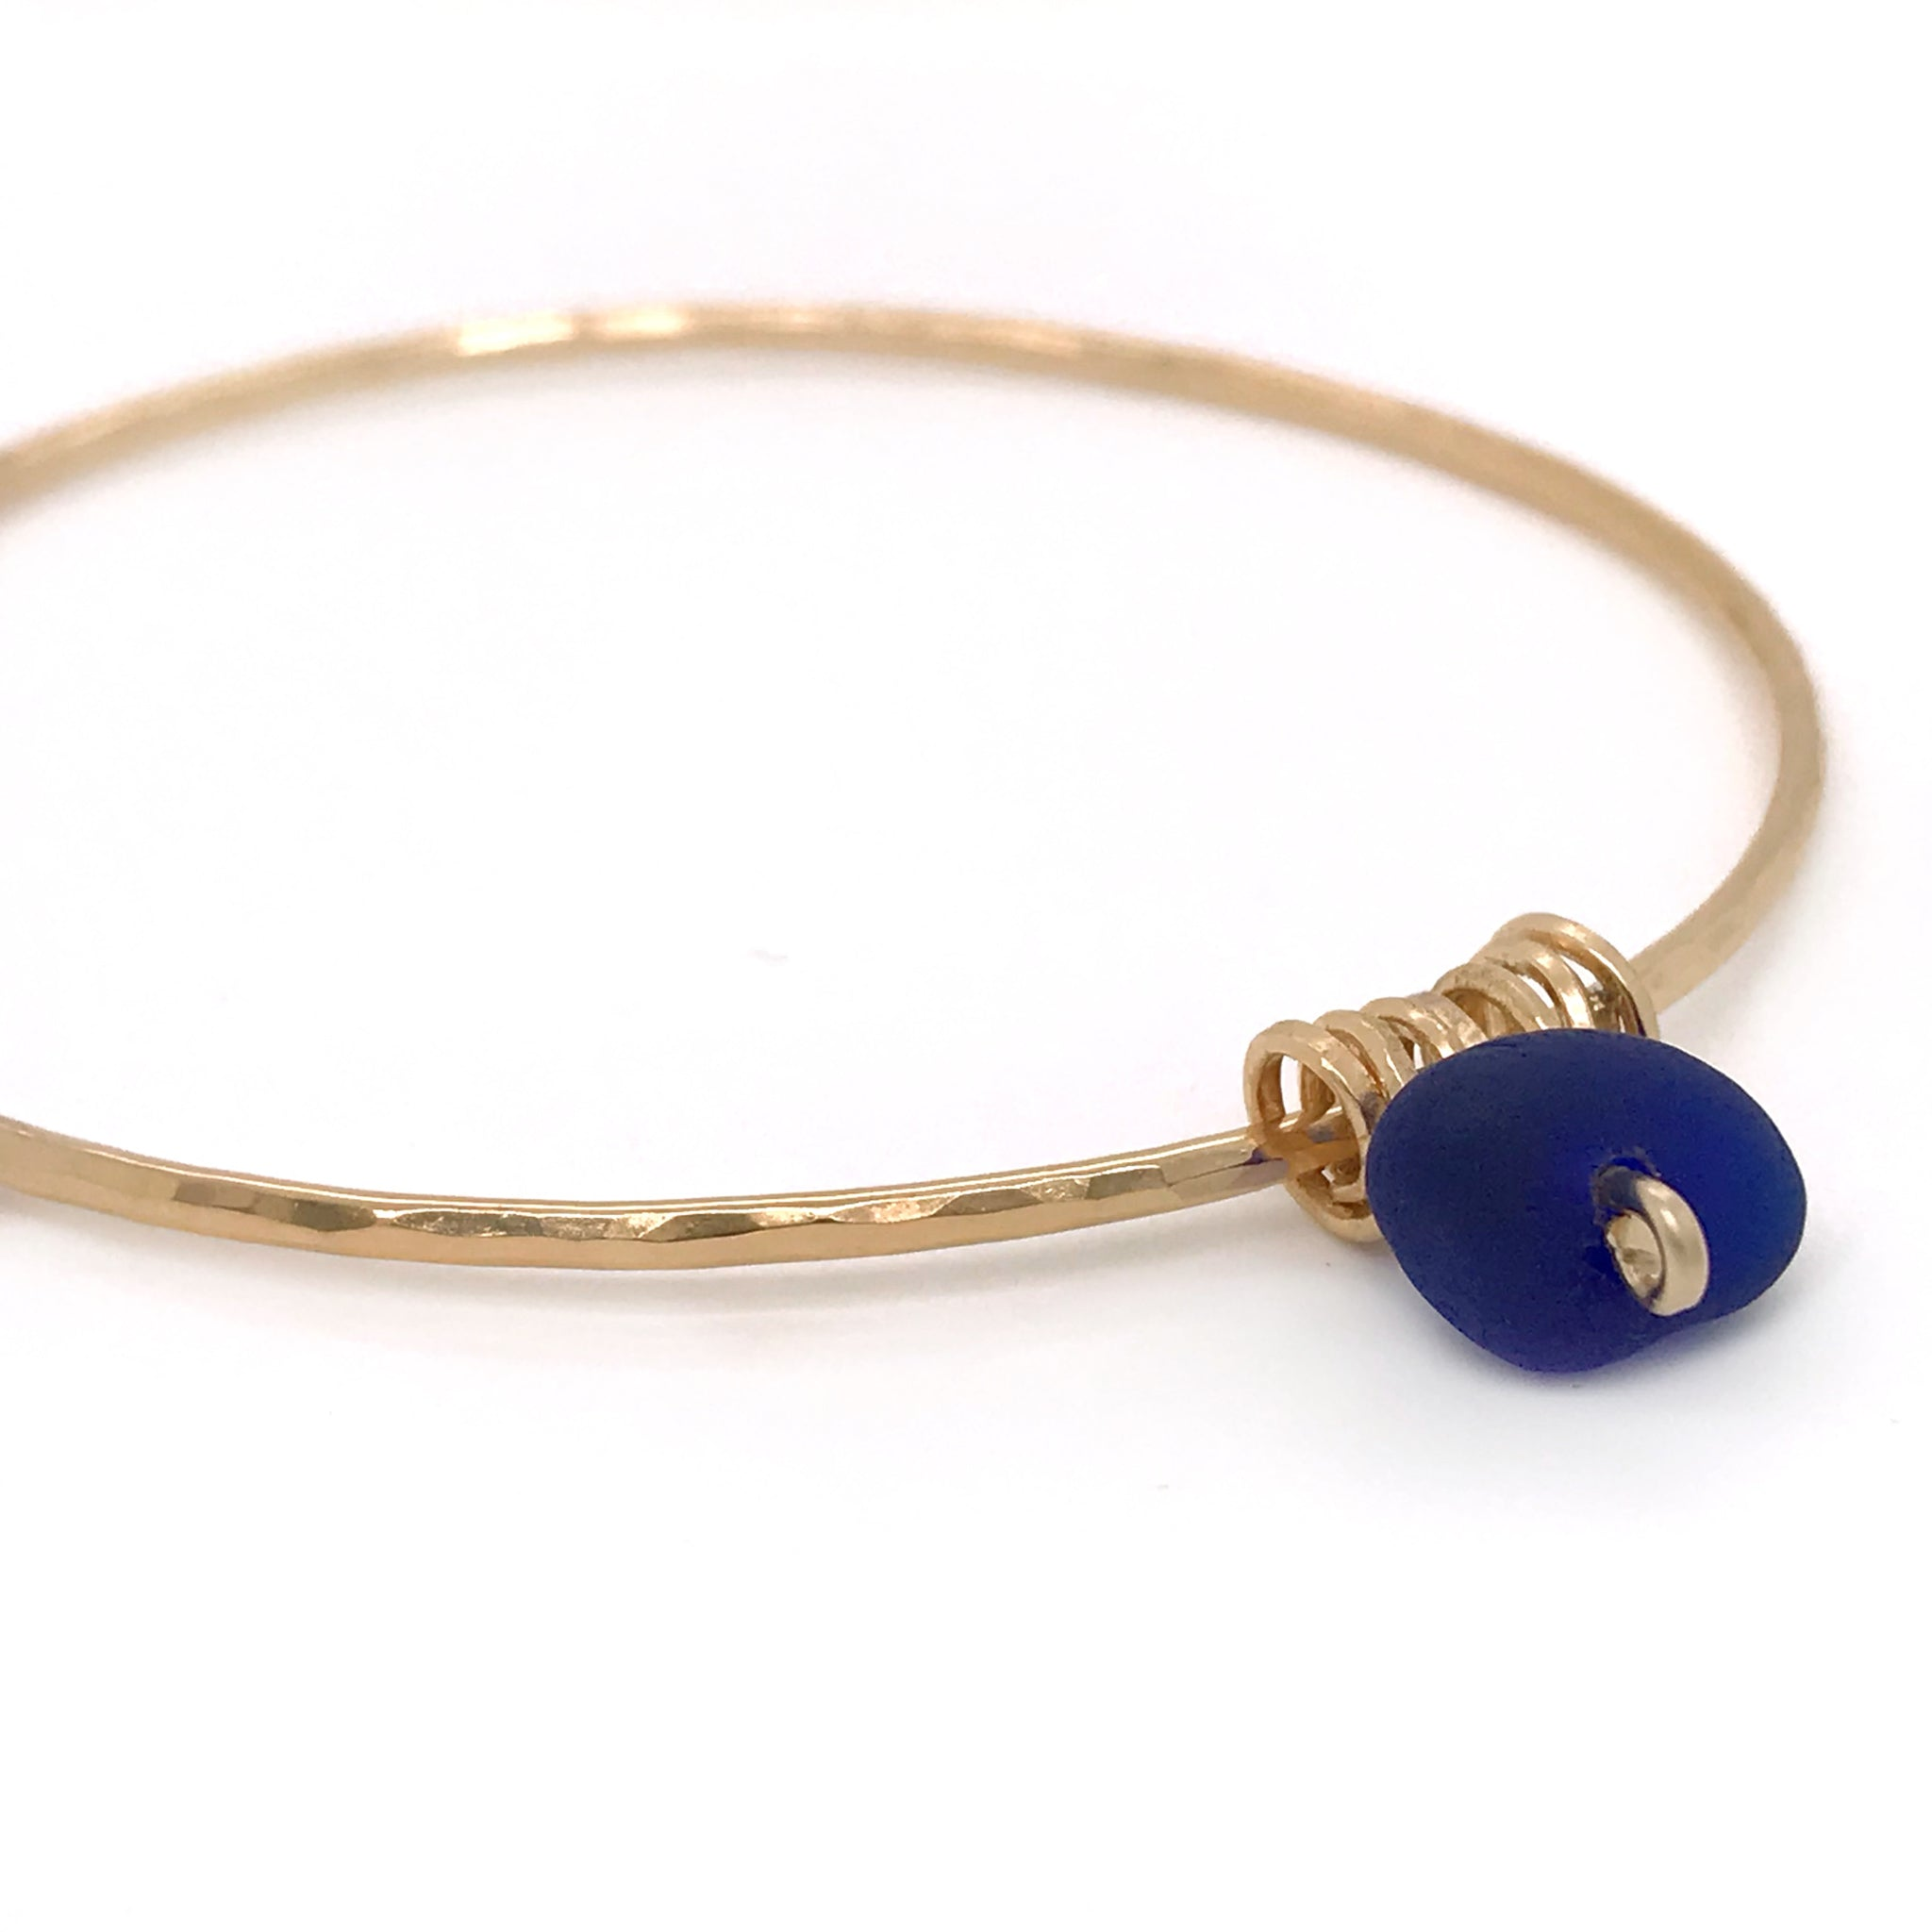 gold bangle with Cobalt Blue Seaglasskriket-broadhurst jewellery